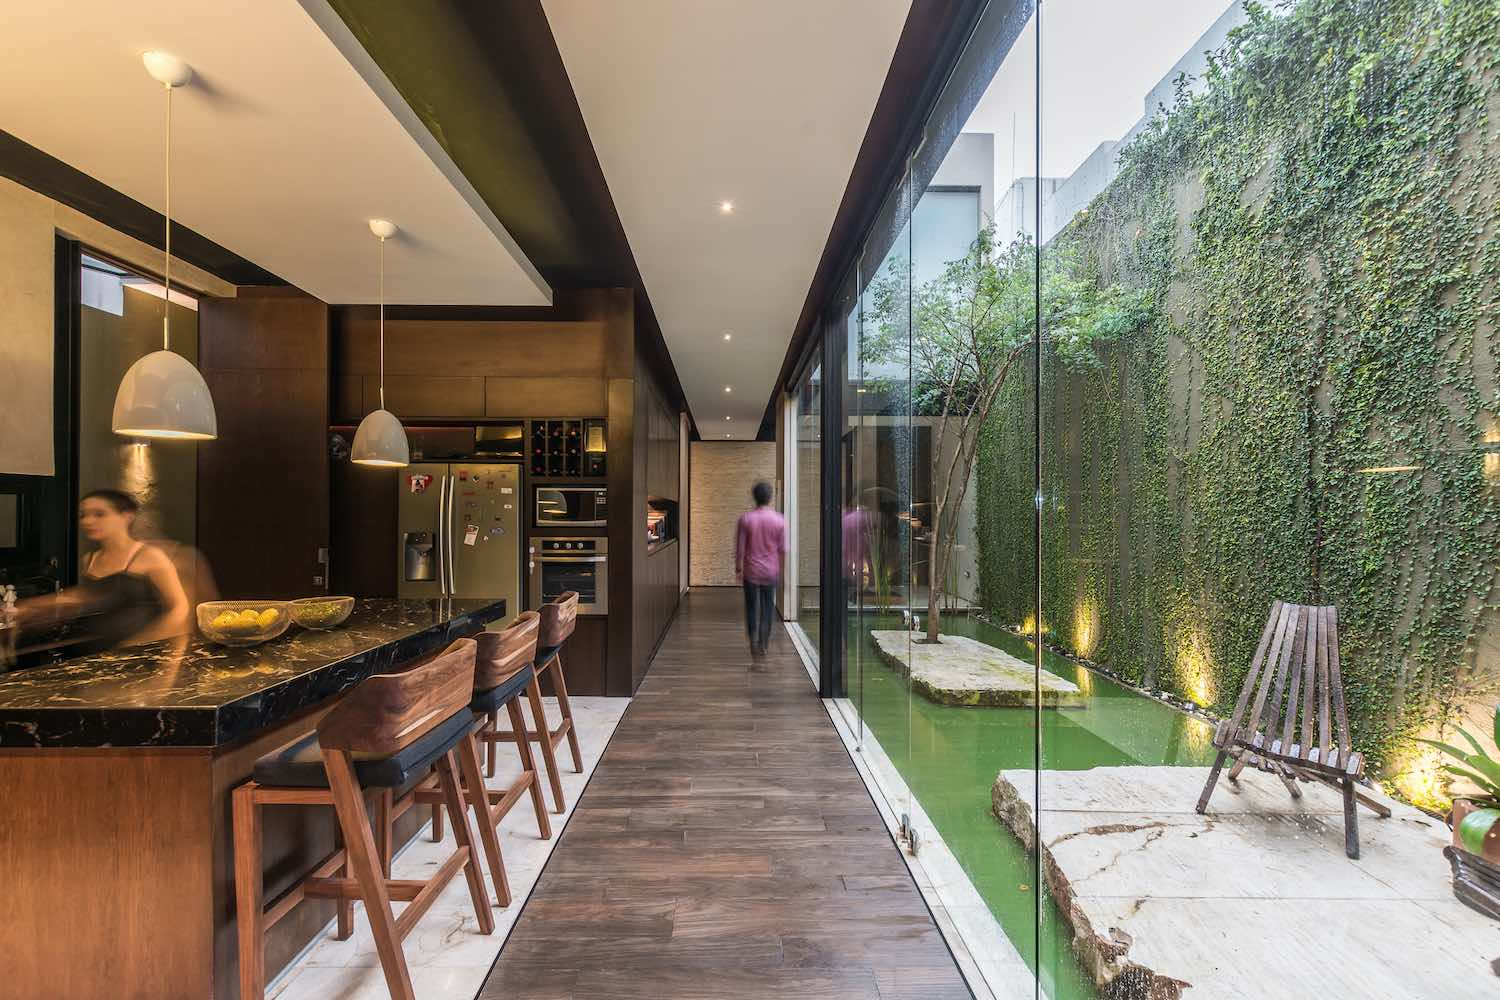 a big glass wall letting the natural lights enter the kitchen from interior courtyard